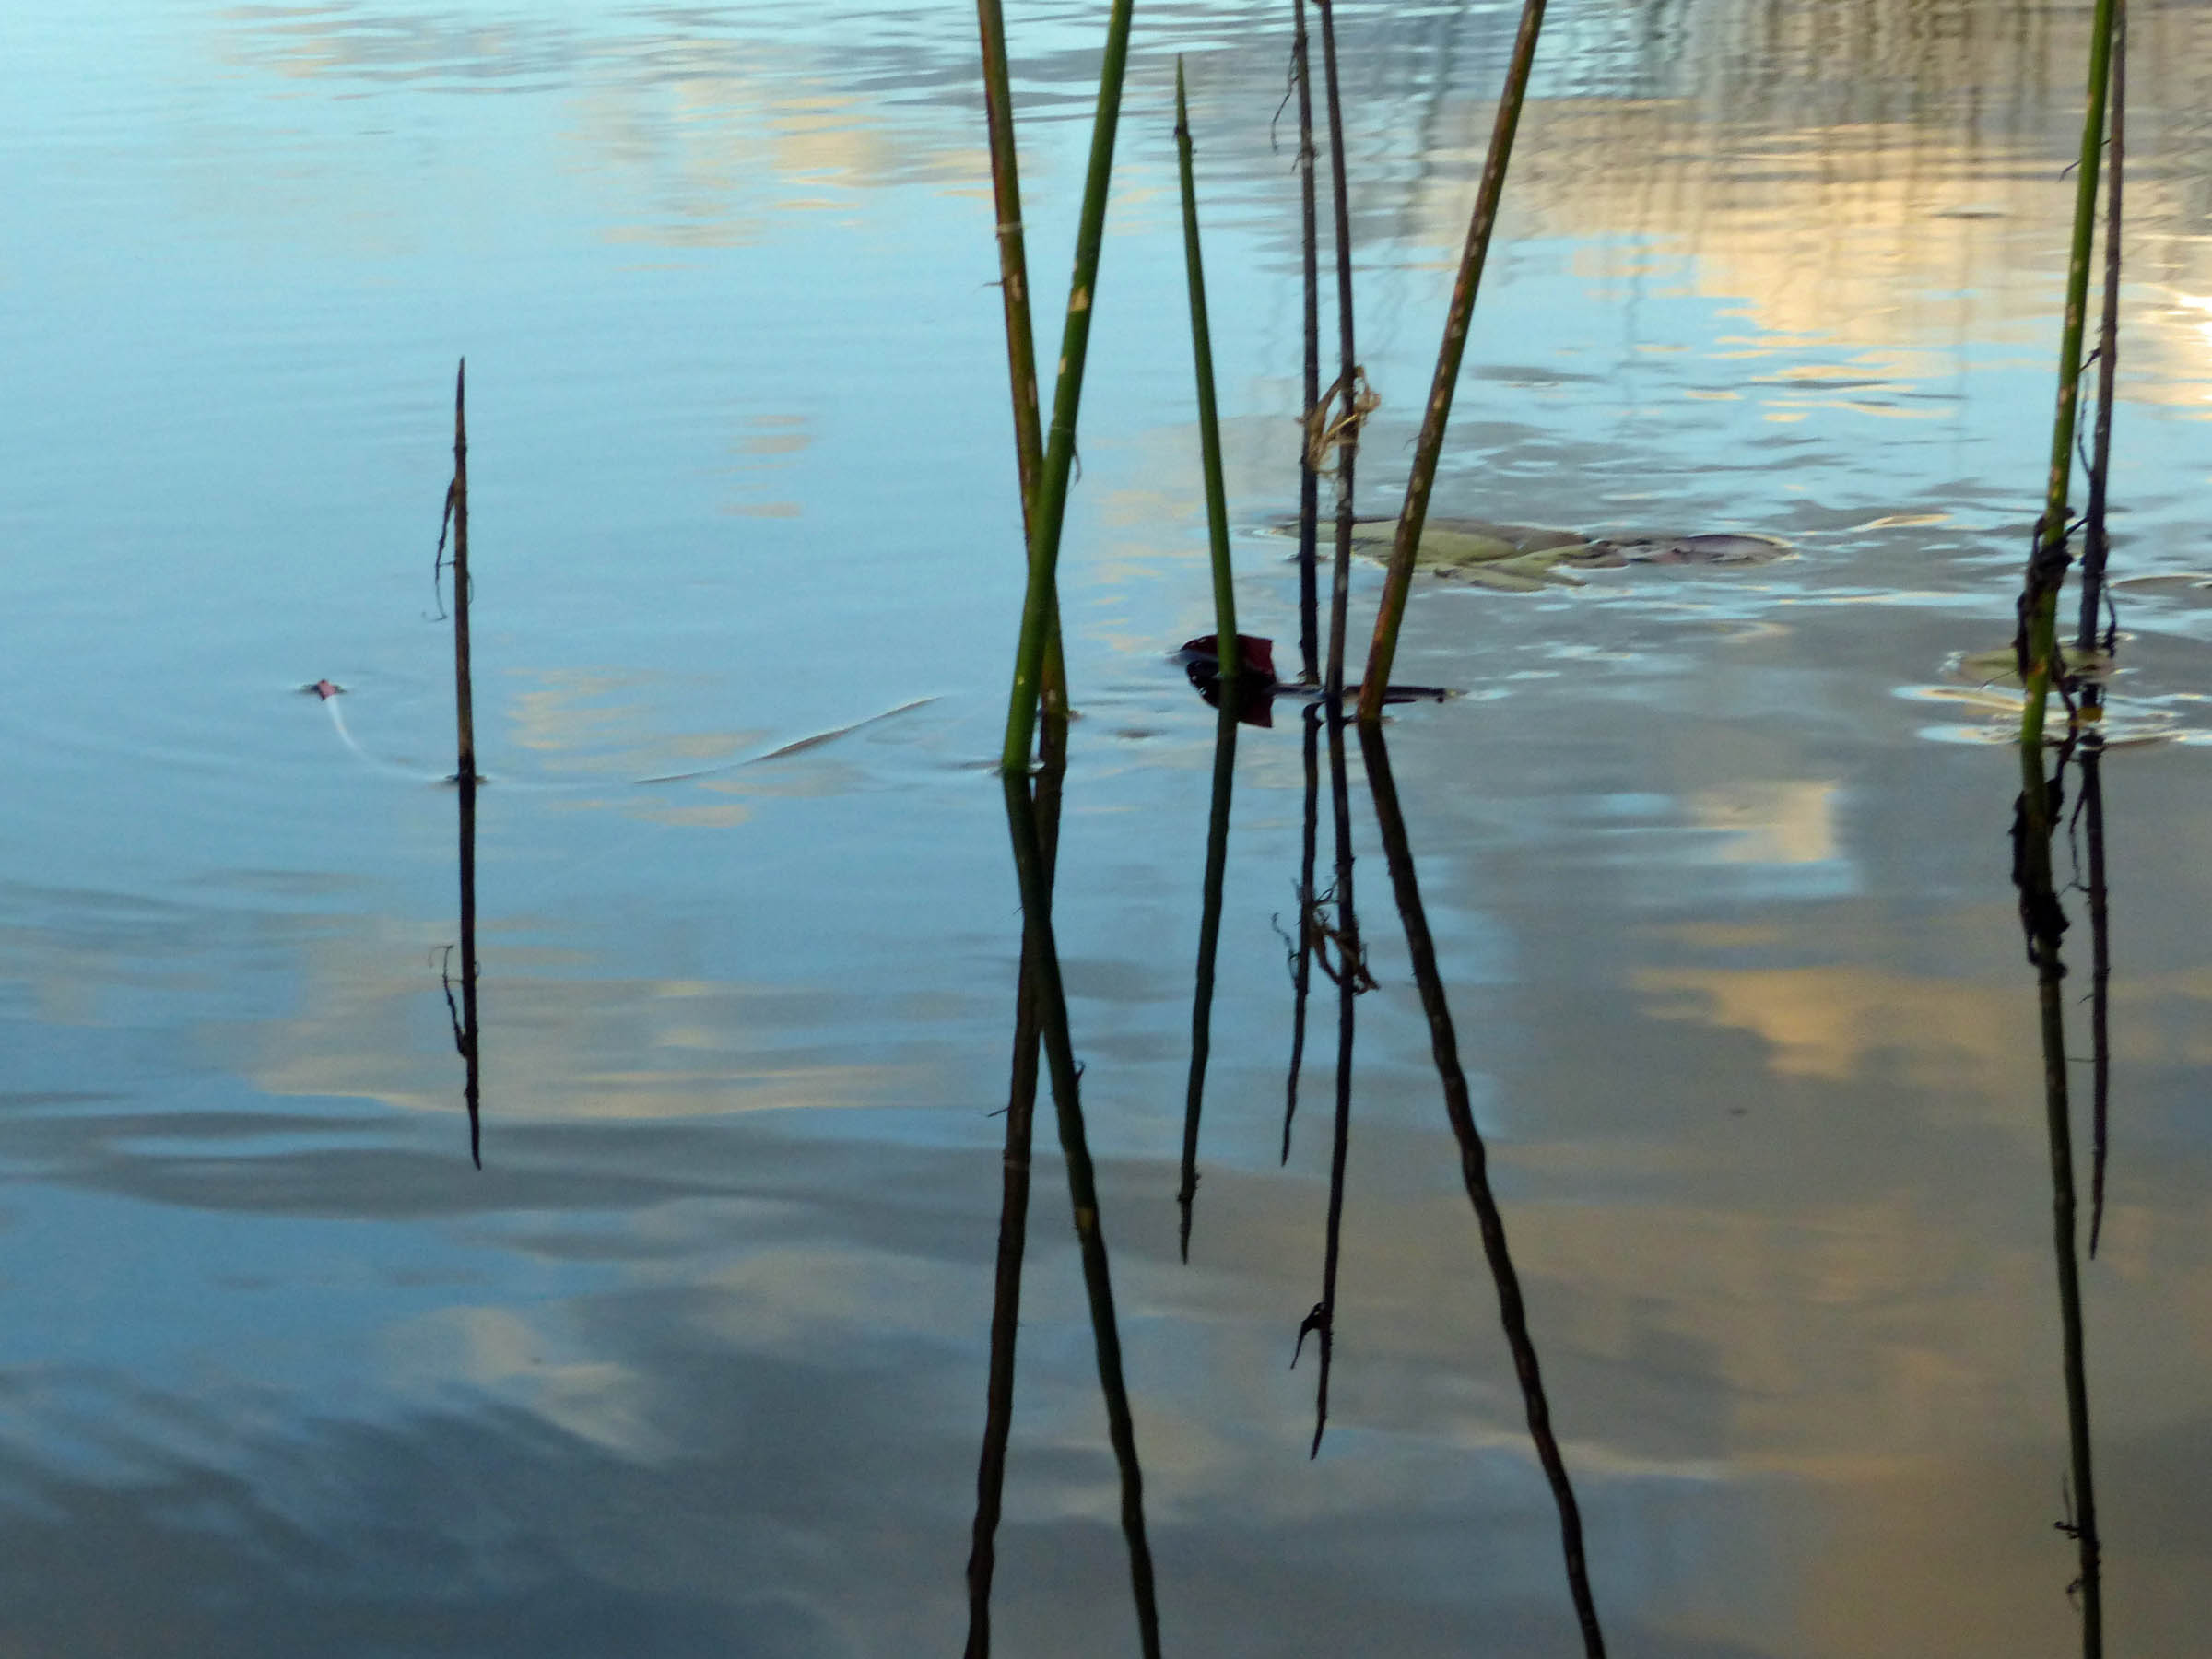 A few sticks and the sky reflected in water